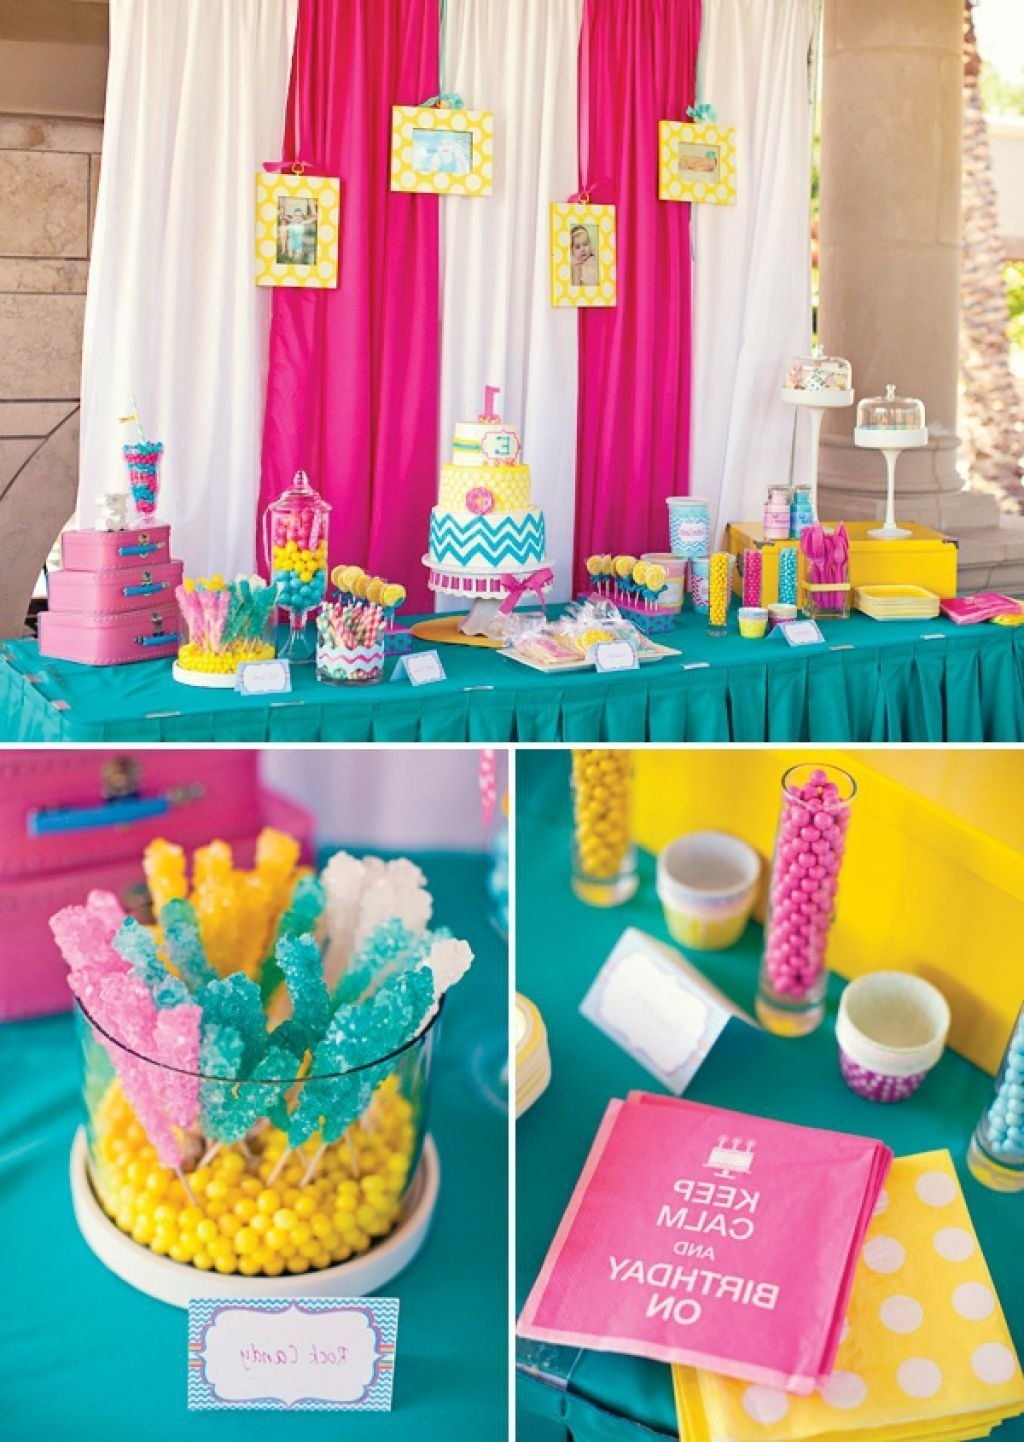 10 Most Recommended 3 Yr Old Birthday Ideas Outdoor Party Decorations Google Search Madeline 5